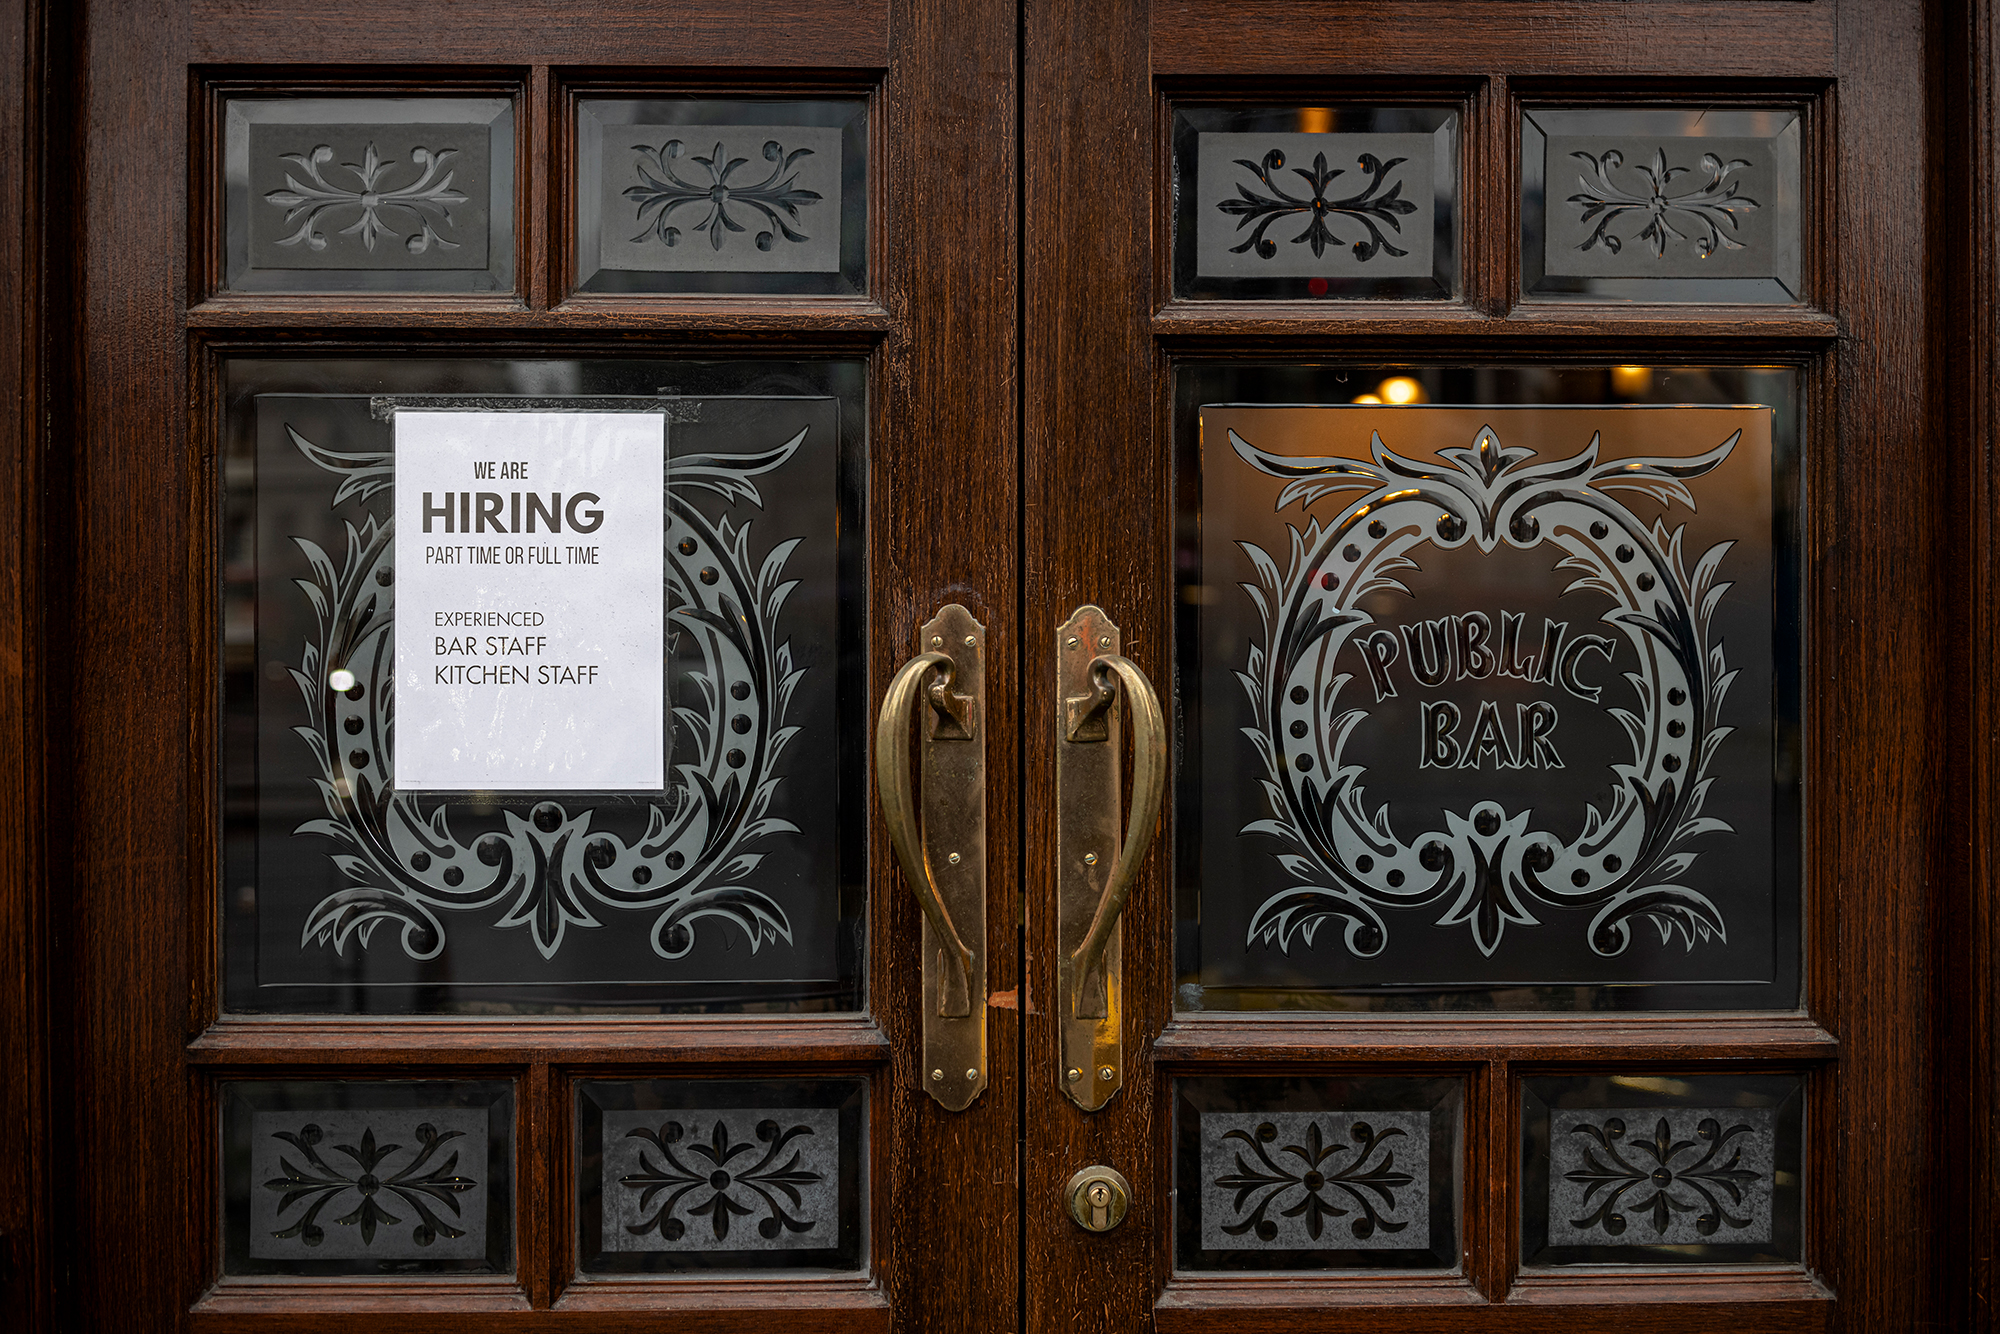 Millions of jobs and a shortage of applicants. Welcome to the new economy